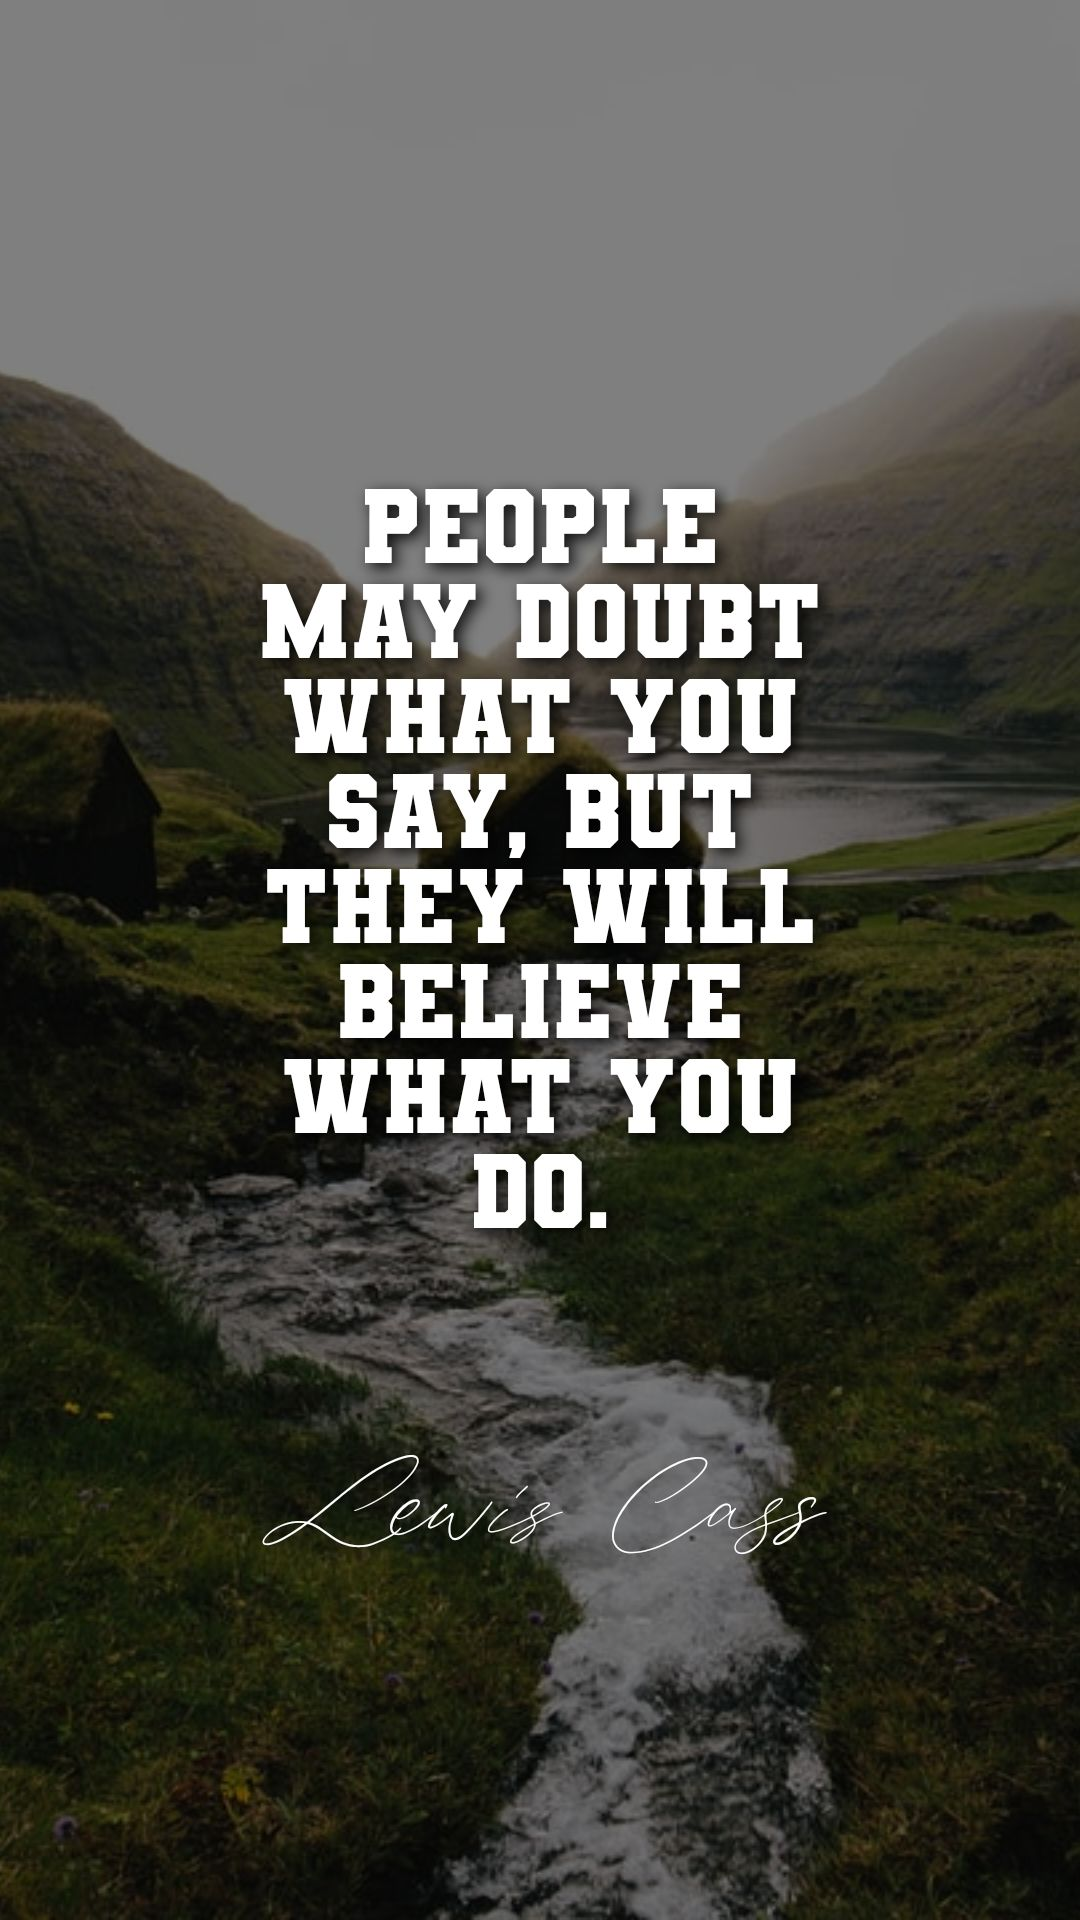 Quotes image of People may doubt what you say, but they will believe what you do.